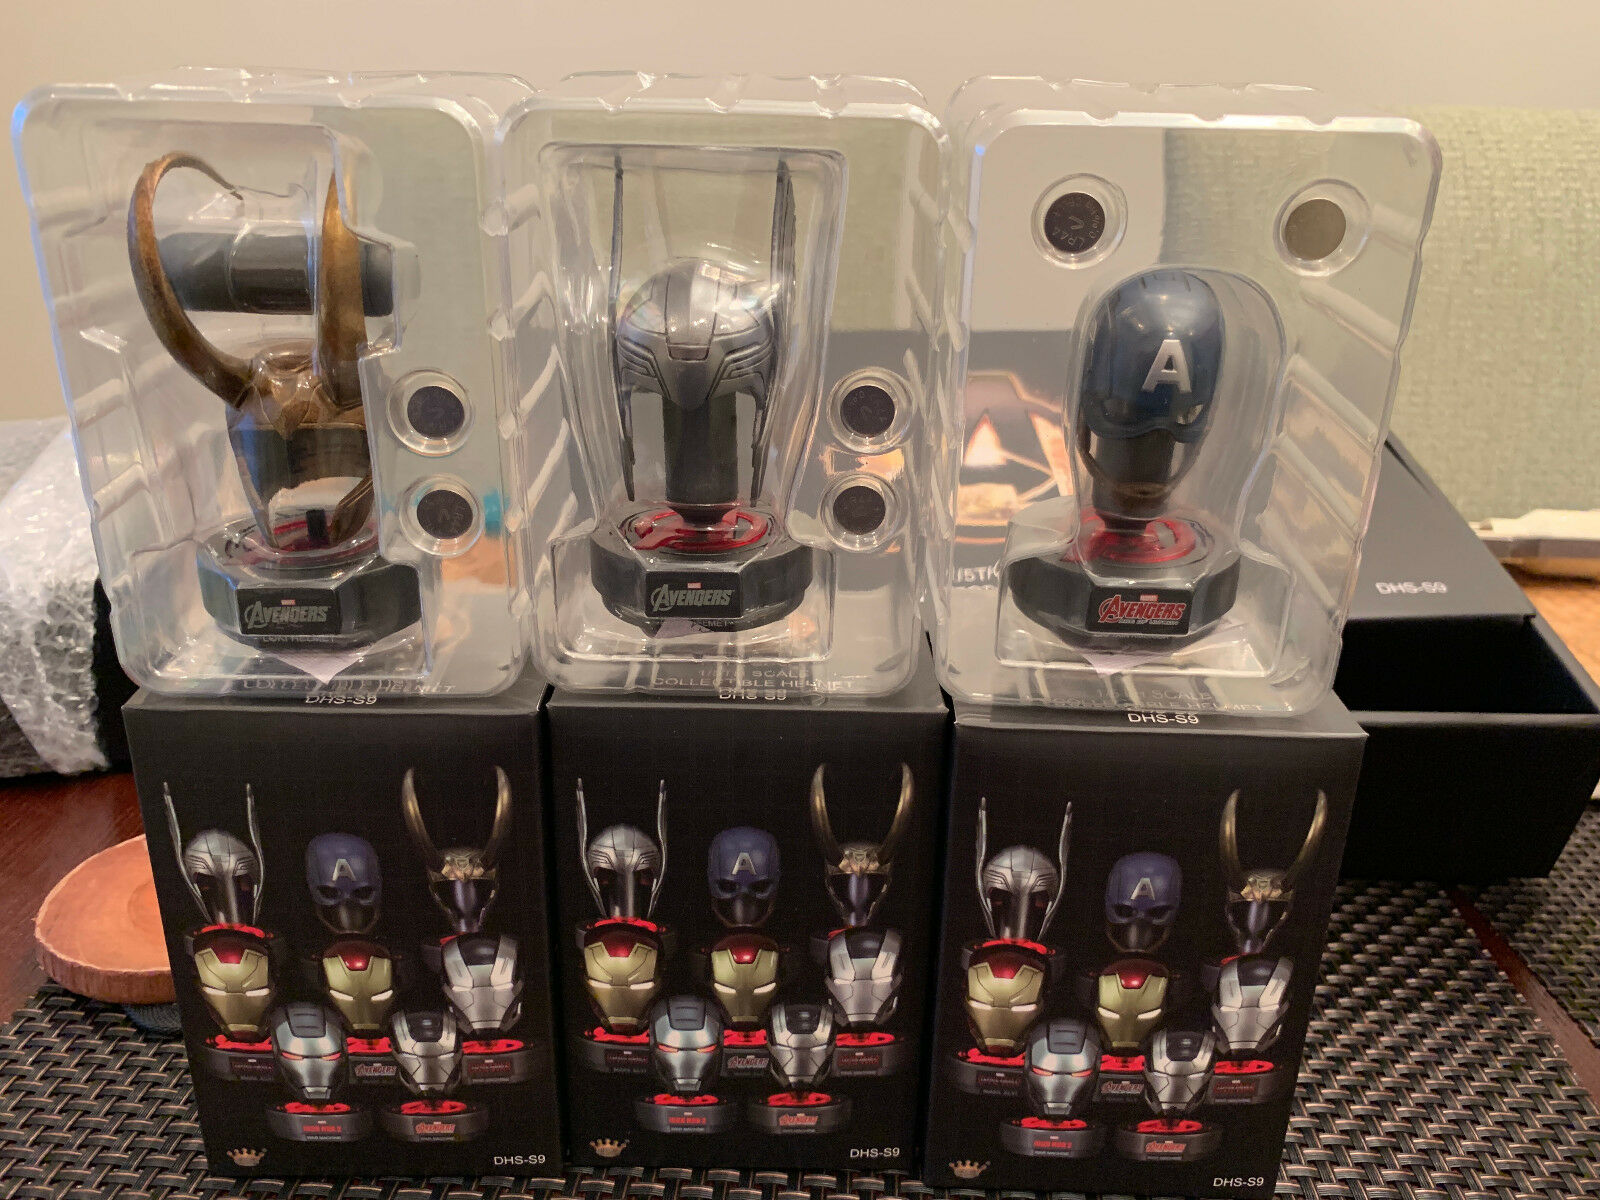 King King King Arts Toy Iron Man Avengers Helmet Collection 45e7d7